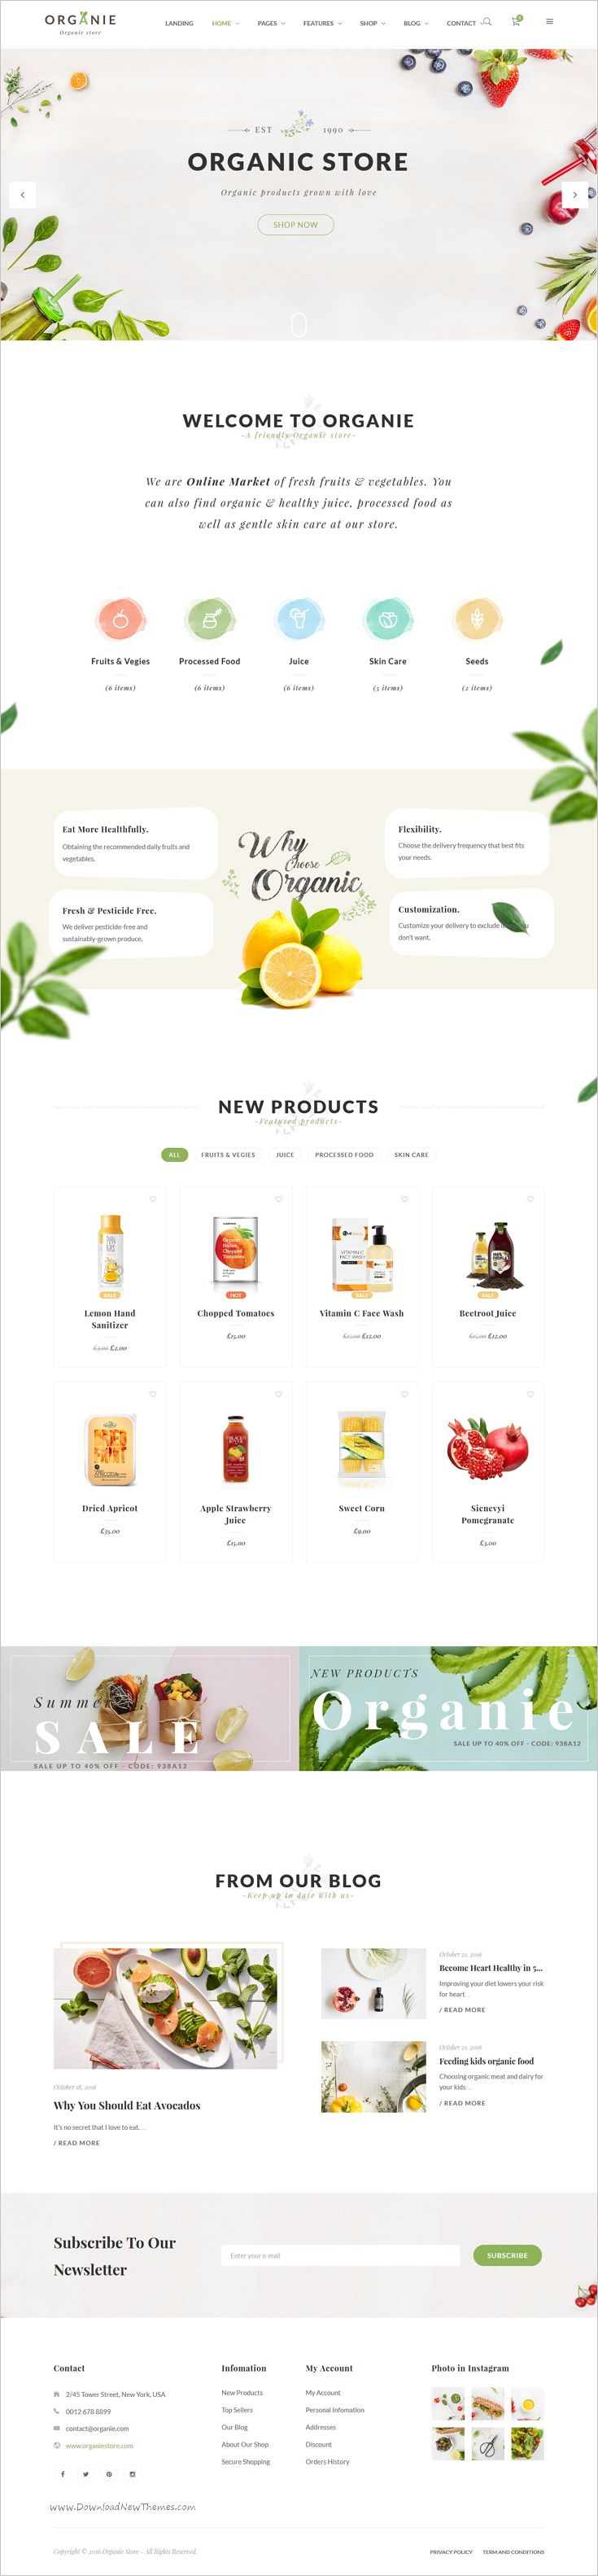 Organie is a wonderful responsive 12in1 @WooCommerce #WordPress theme for organic #shop, farm, cake and flower shop eCommerce website download now➩ https://themeforest.net/item/organie-an-organic-store-farm-cake-flower-shop-woocommerce-theme/18777939?ref=Datasata